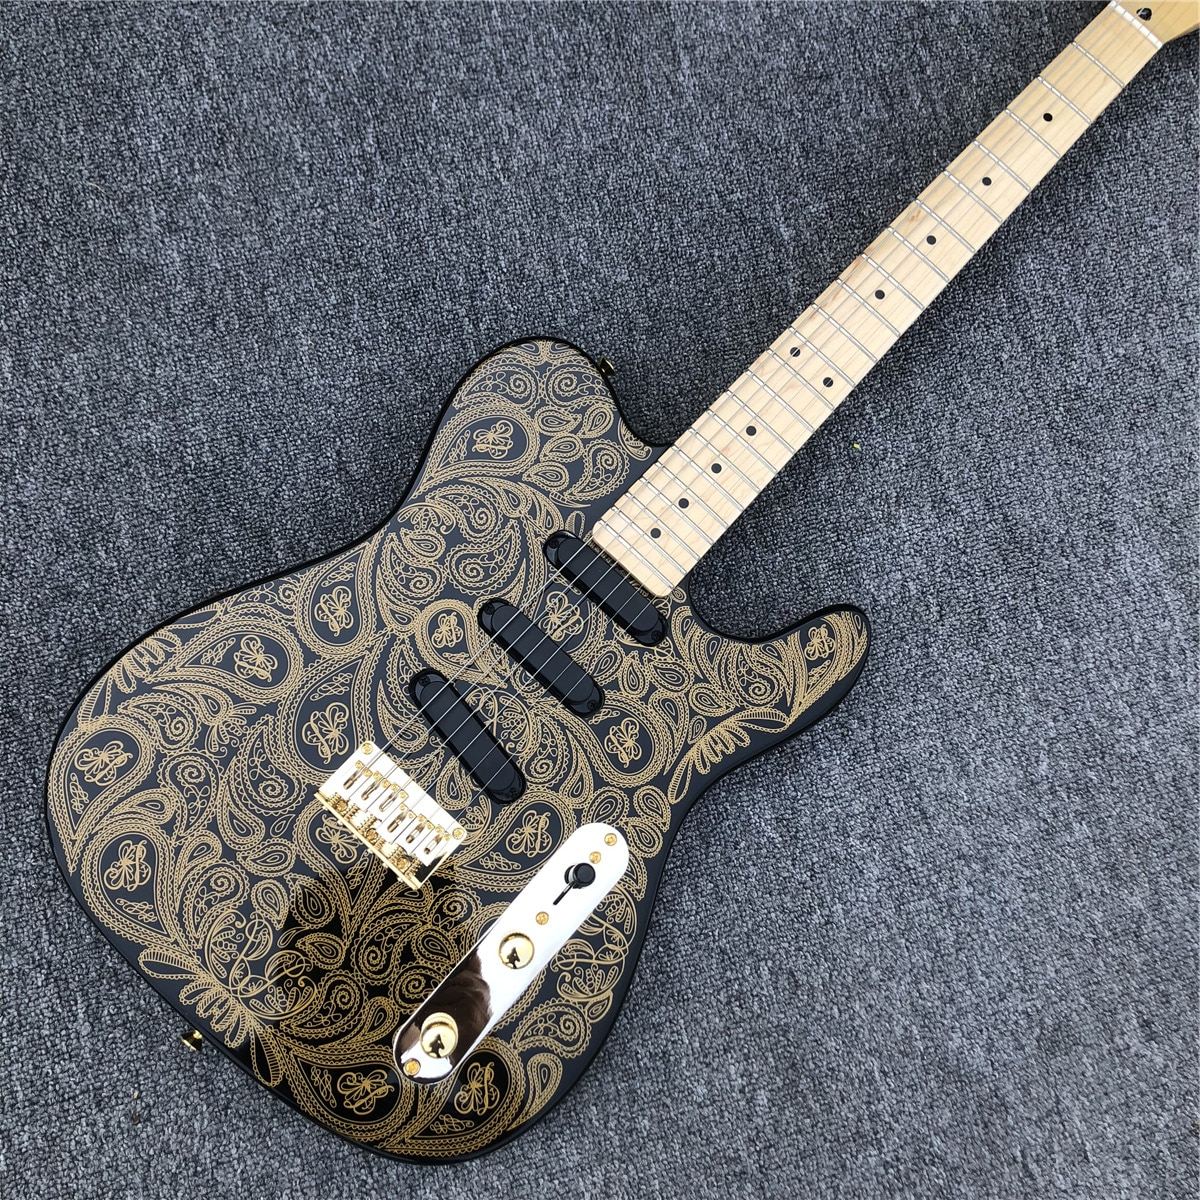 Golden Pattern Solid wood TL Electric Guitar with Maple Fingerboard